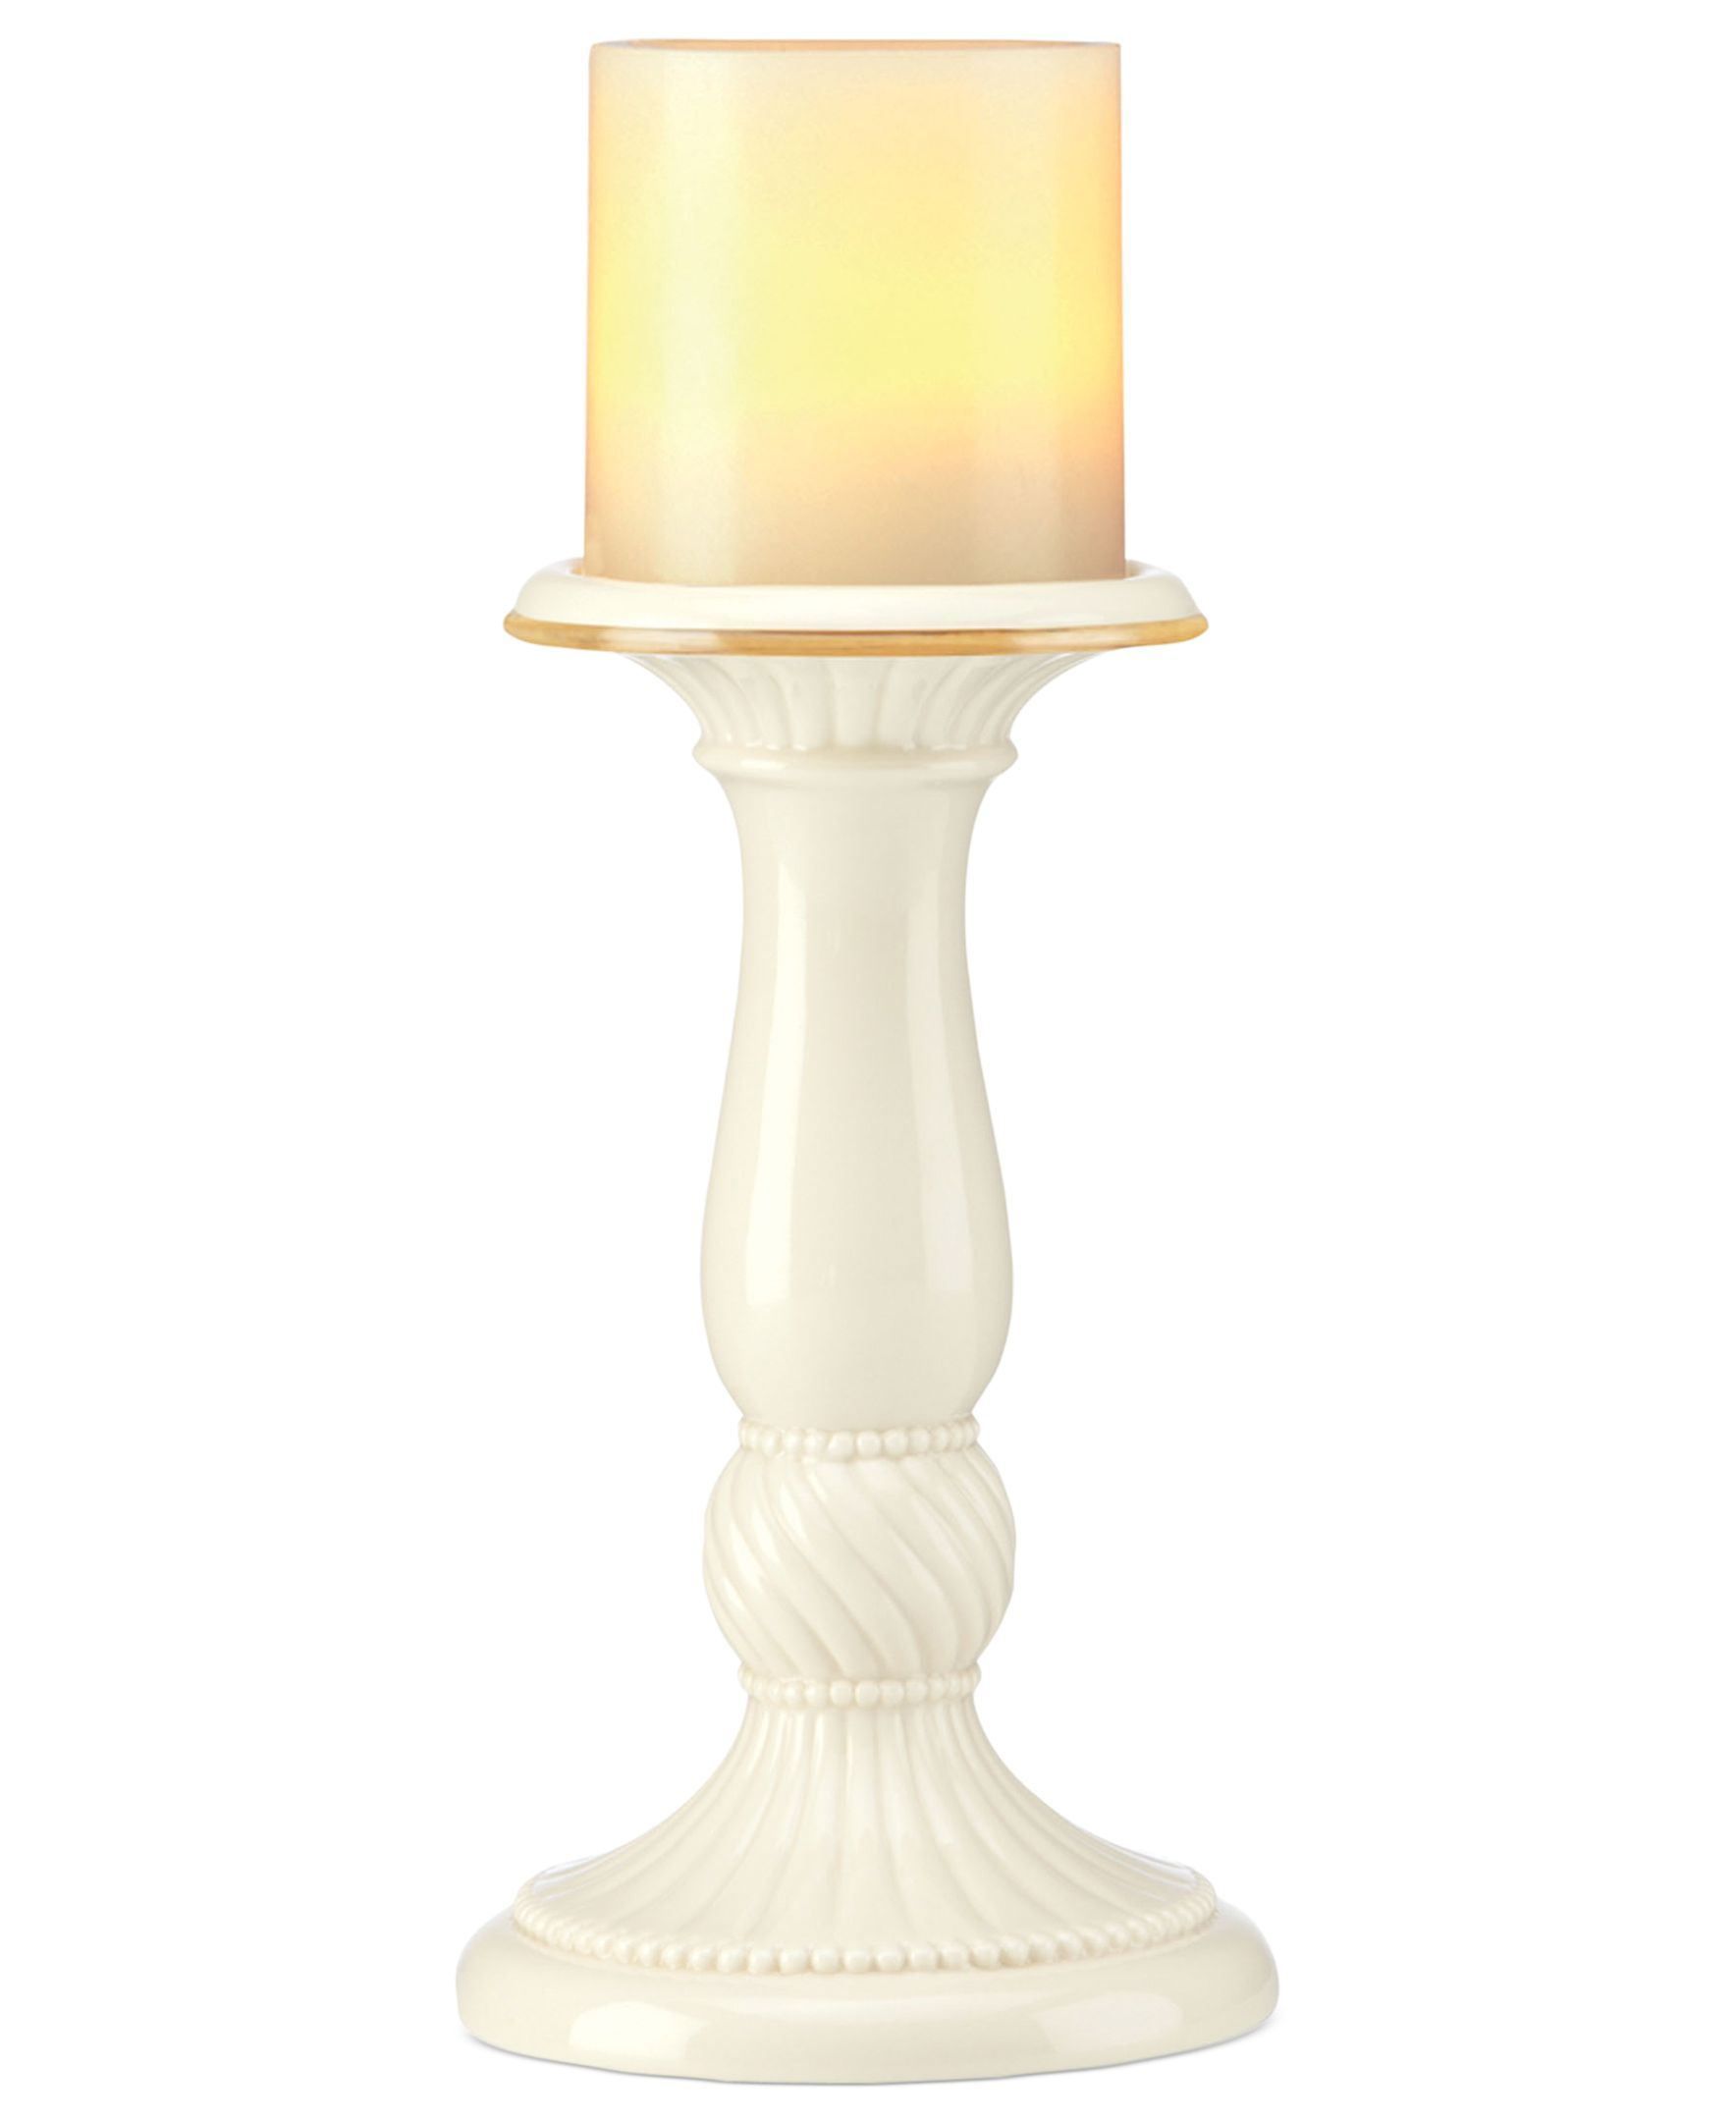 Lenox Candle Holder, Illuminate Pleated Pillar